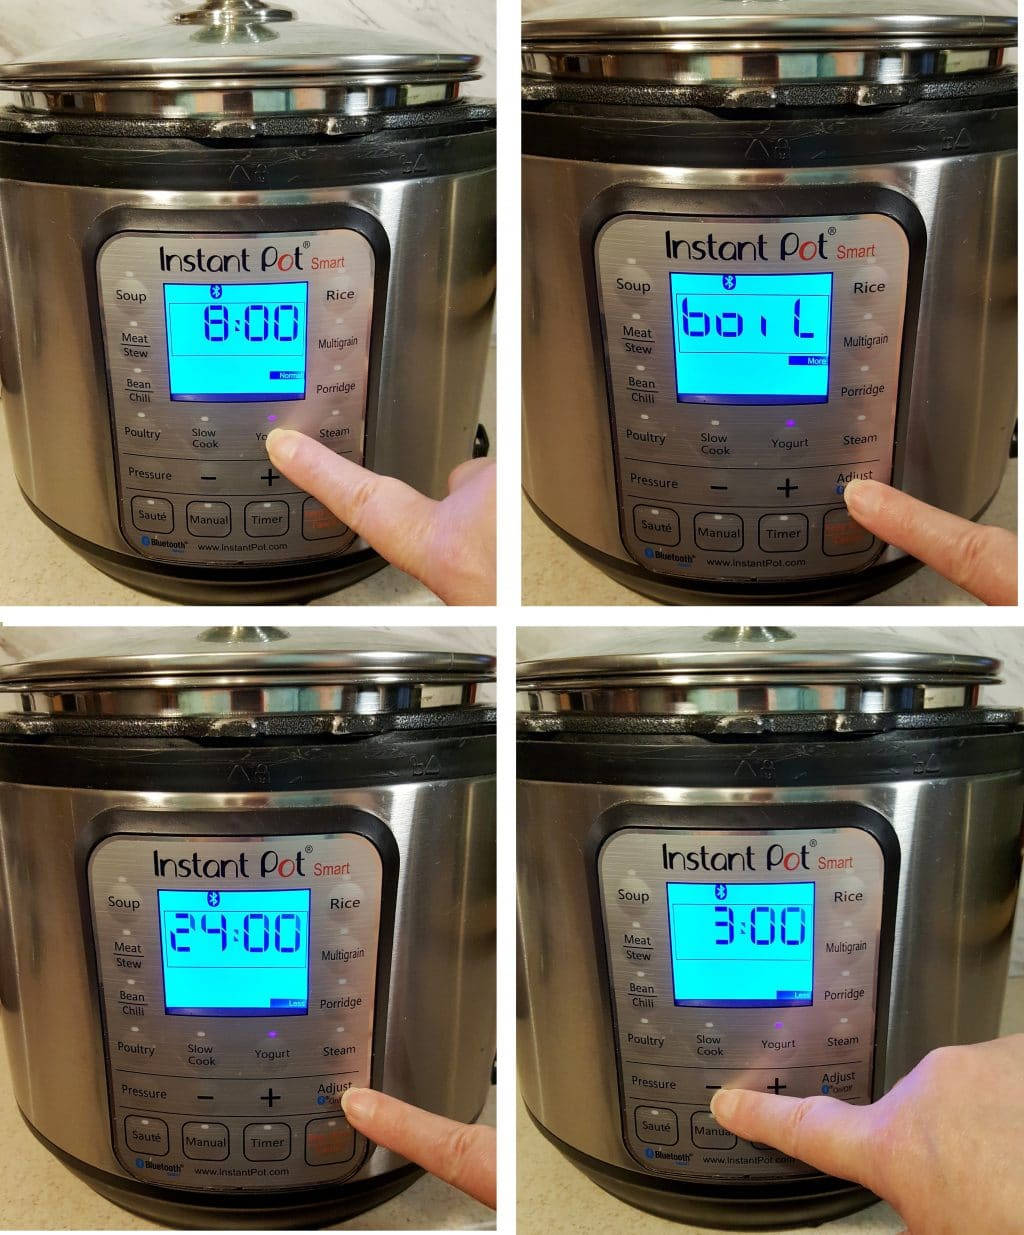 Set your Instant Pot or GoWise